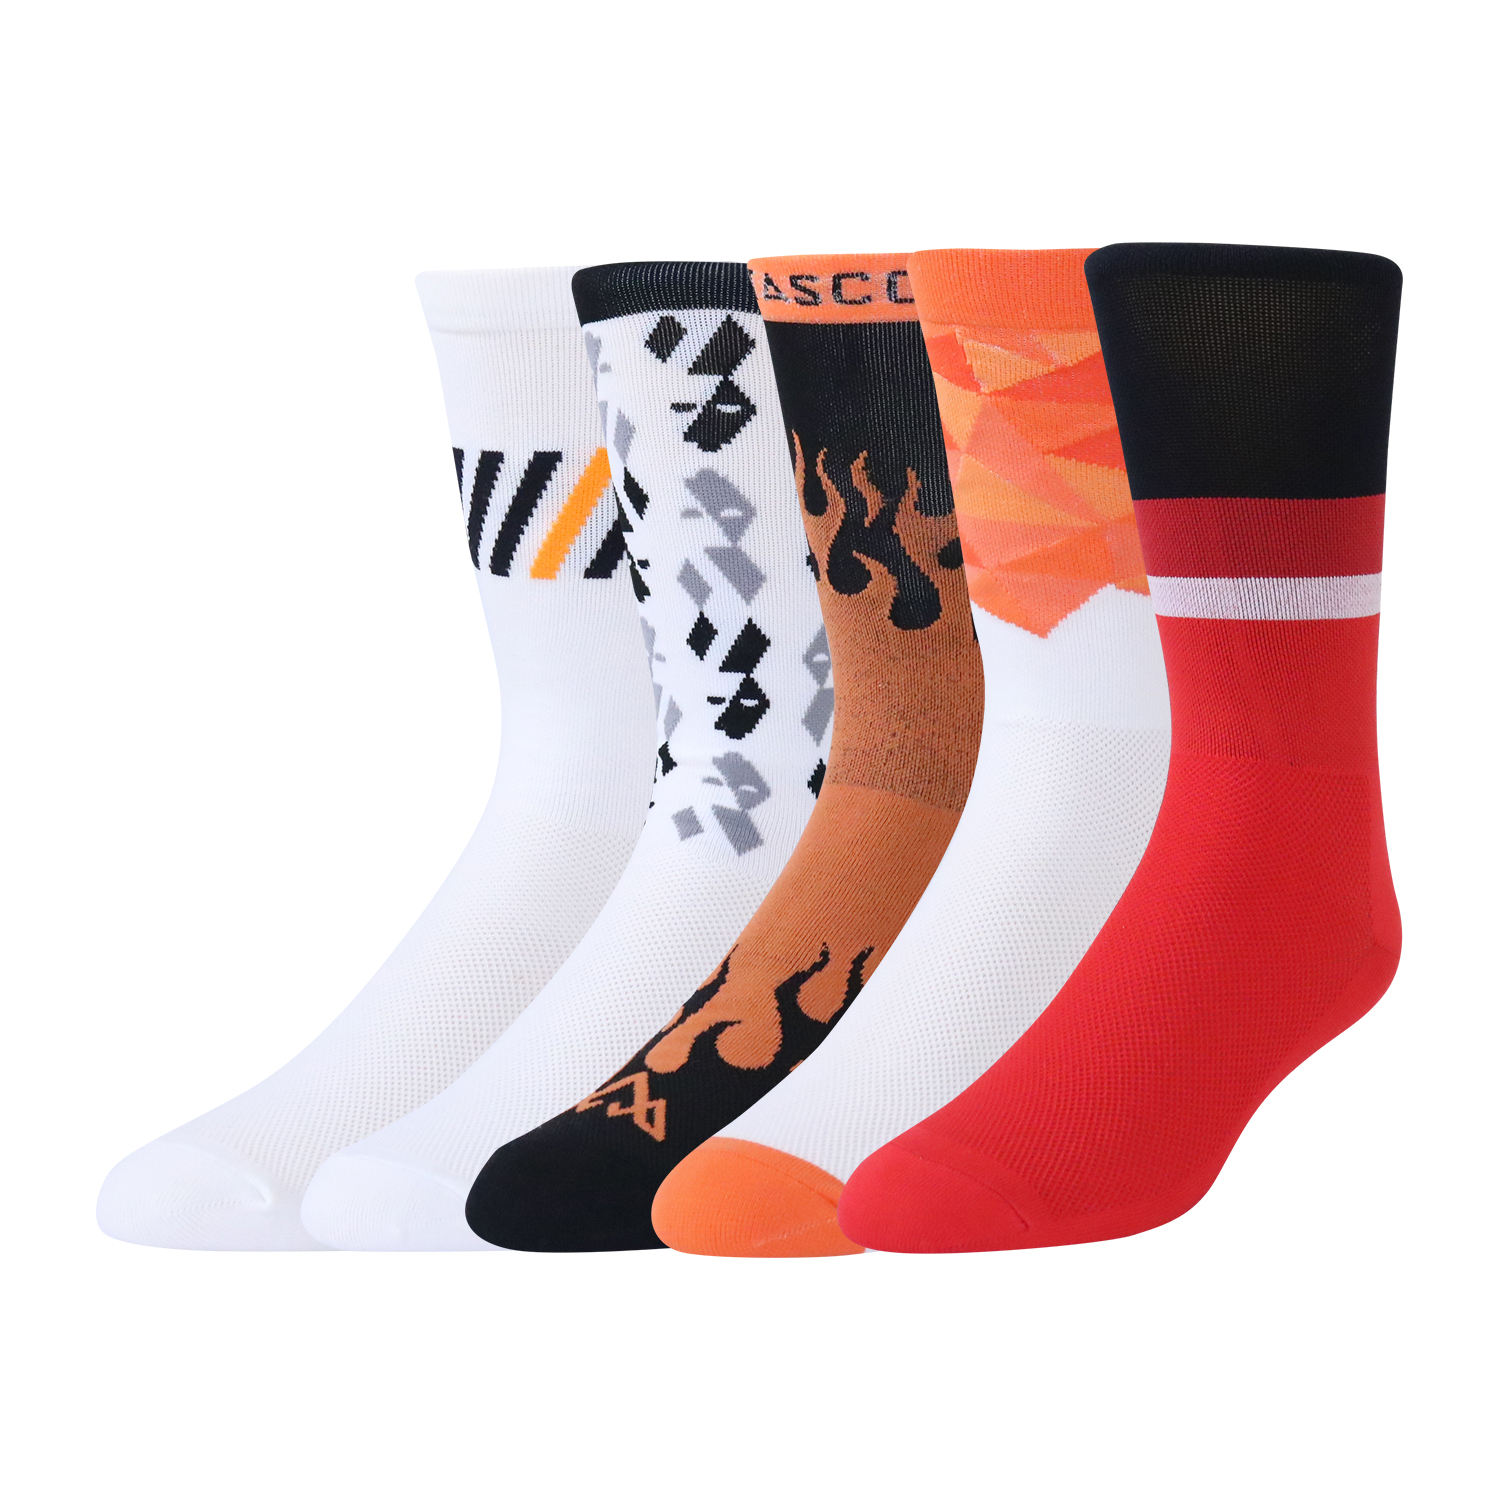 Oem custom logo coolmax nylon compression cycling socks for men